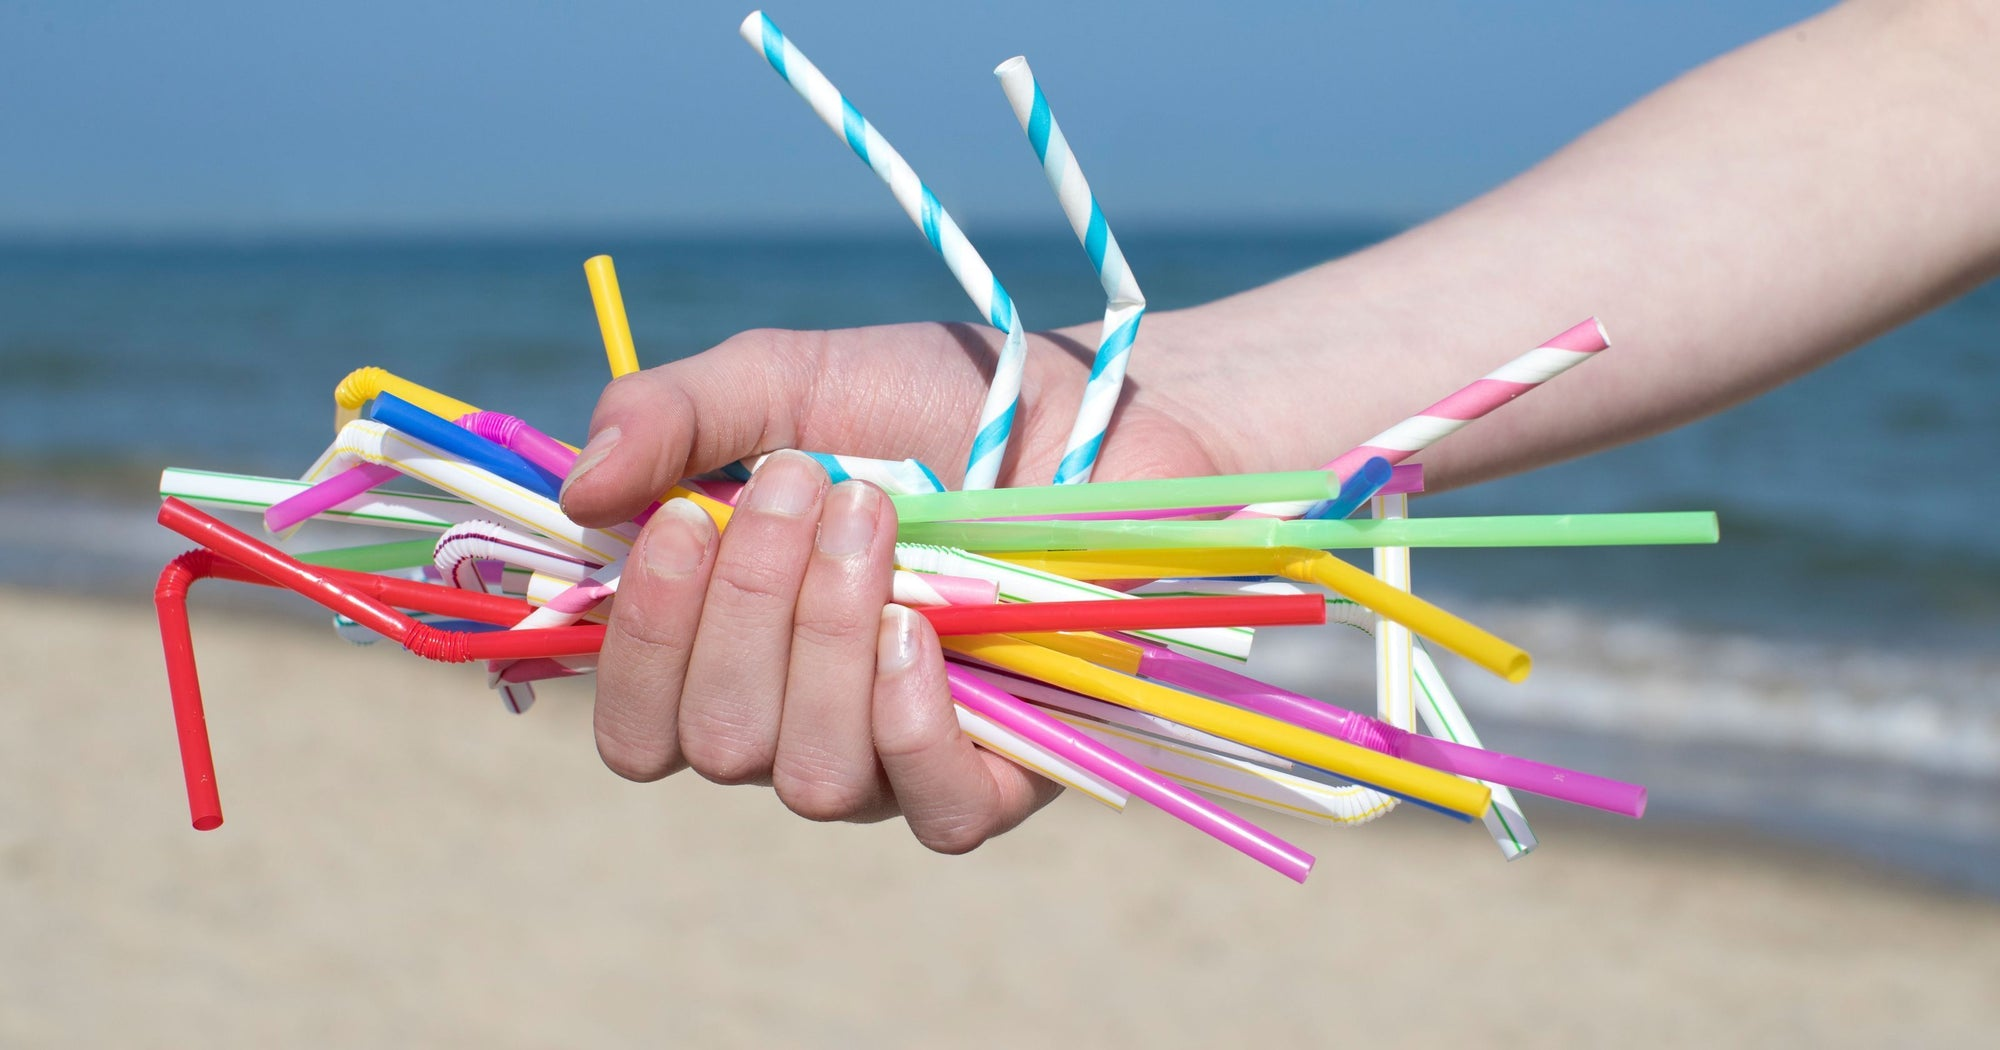 Reusable Straws - How to Keep Our Beaches Clean